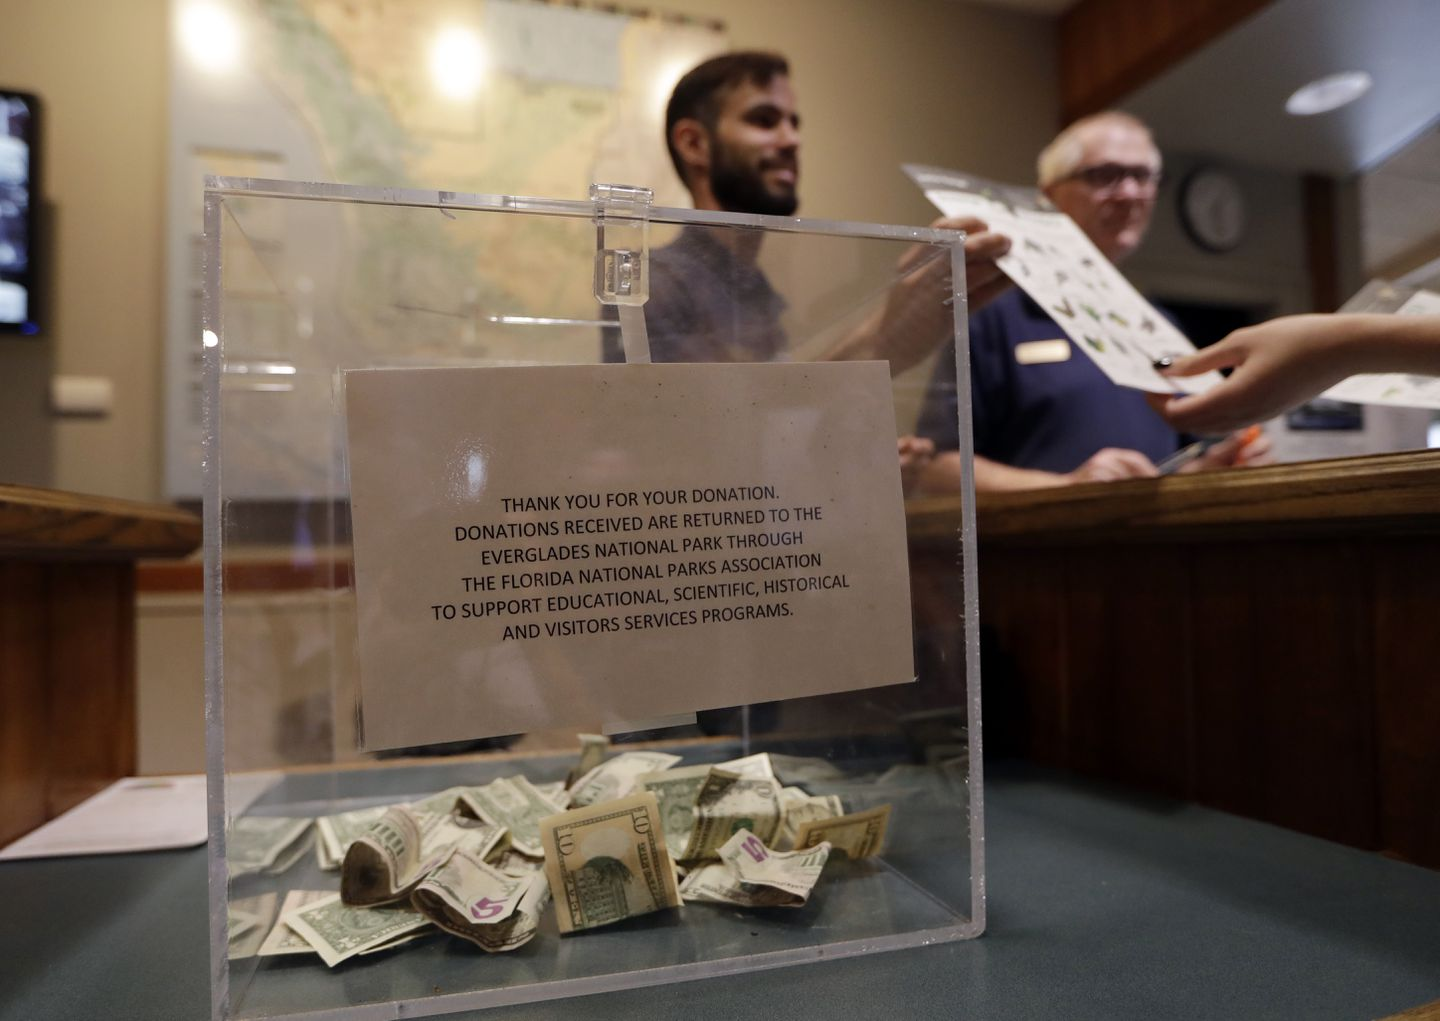 A donation box sat on the counter as Dany Garcia spoke with visitors at the Ernest F. Coe Visitor Center in Everglades National Park in Homestead, Fla.